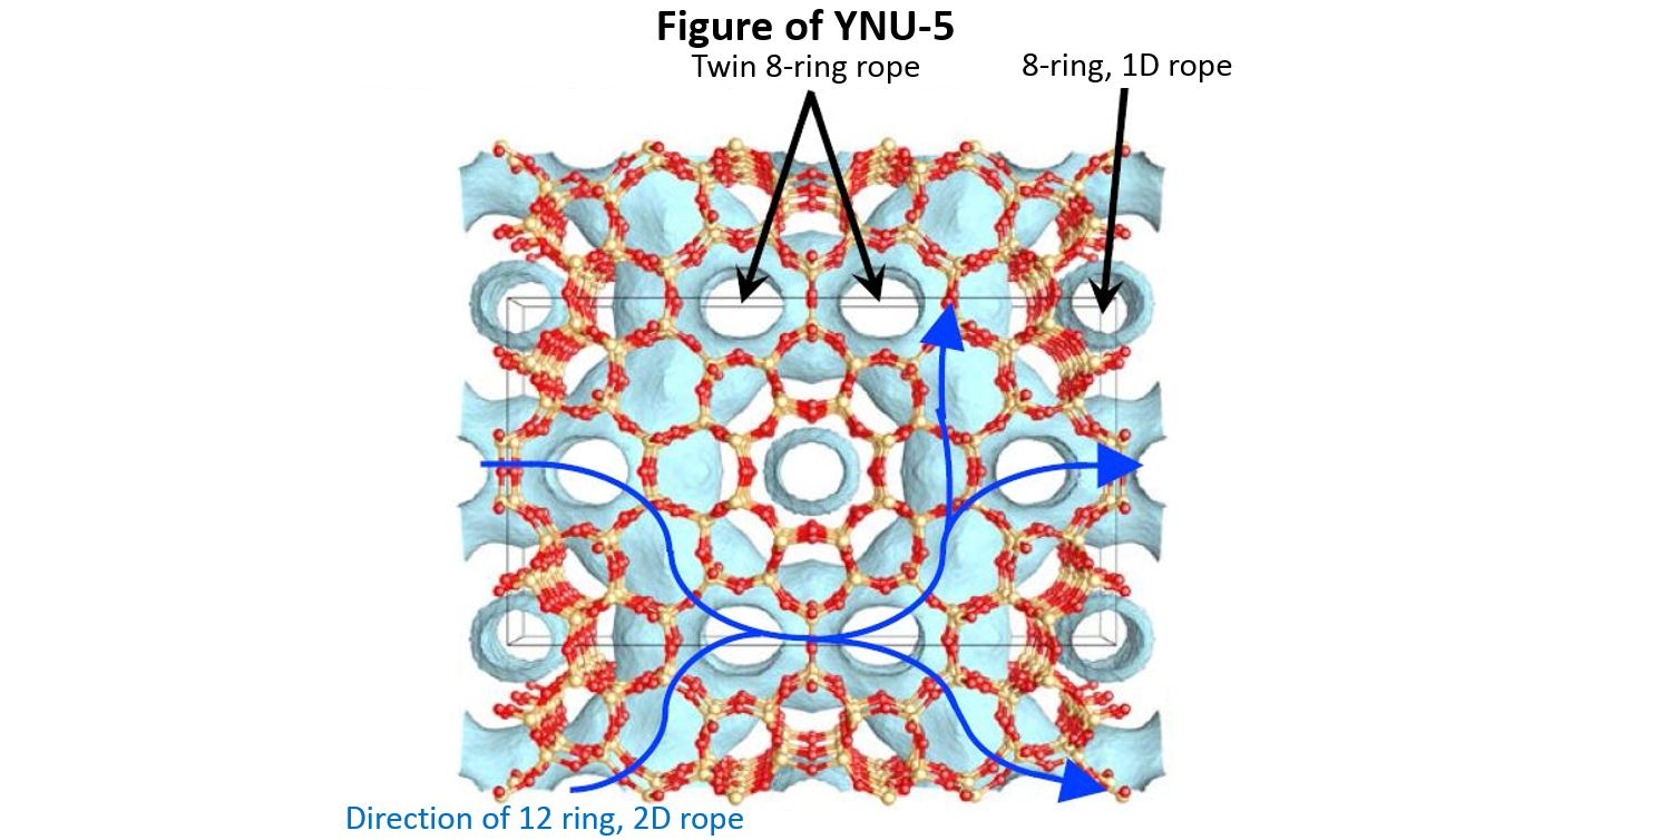 Yokohama National University, AIST Synthesize Zeolite With New, Versatile Structure